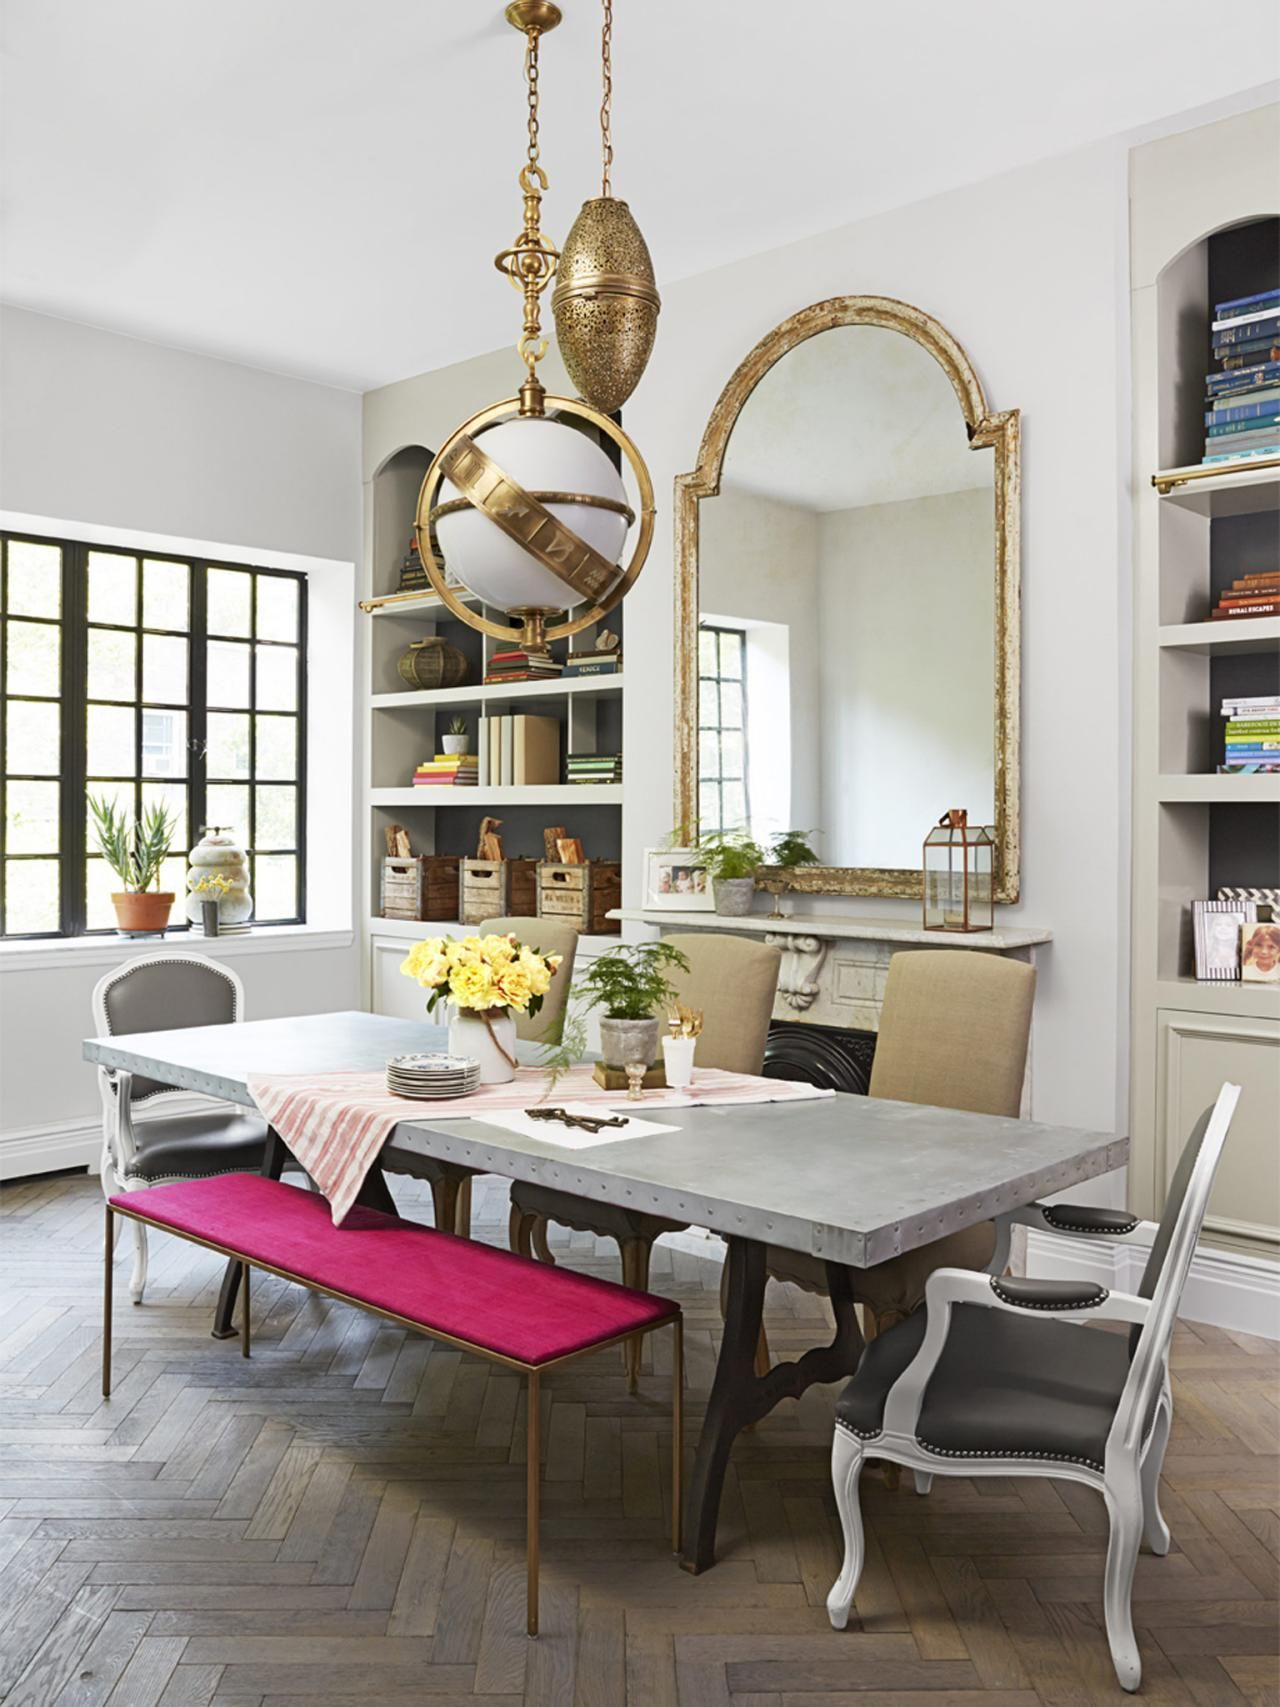 Genevieve Gorder S Nyc Apartment Renovation Hgtv Apartments And